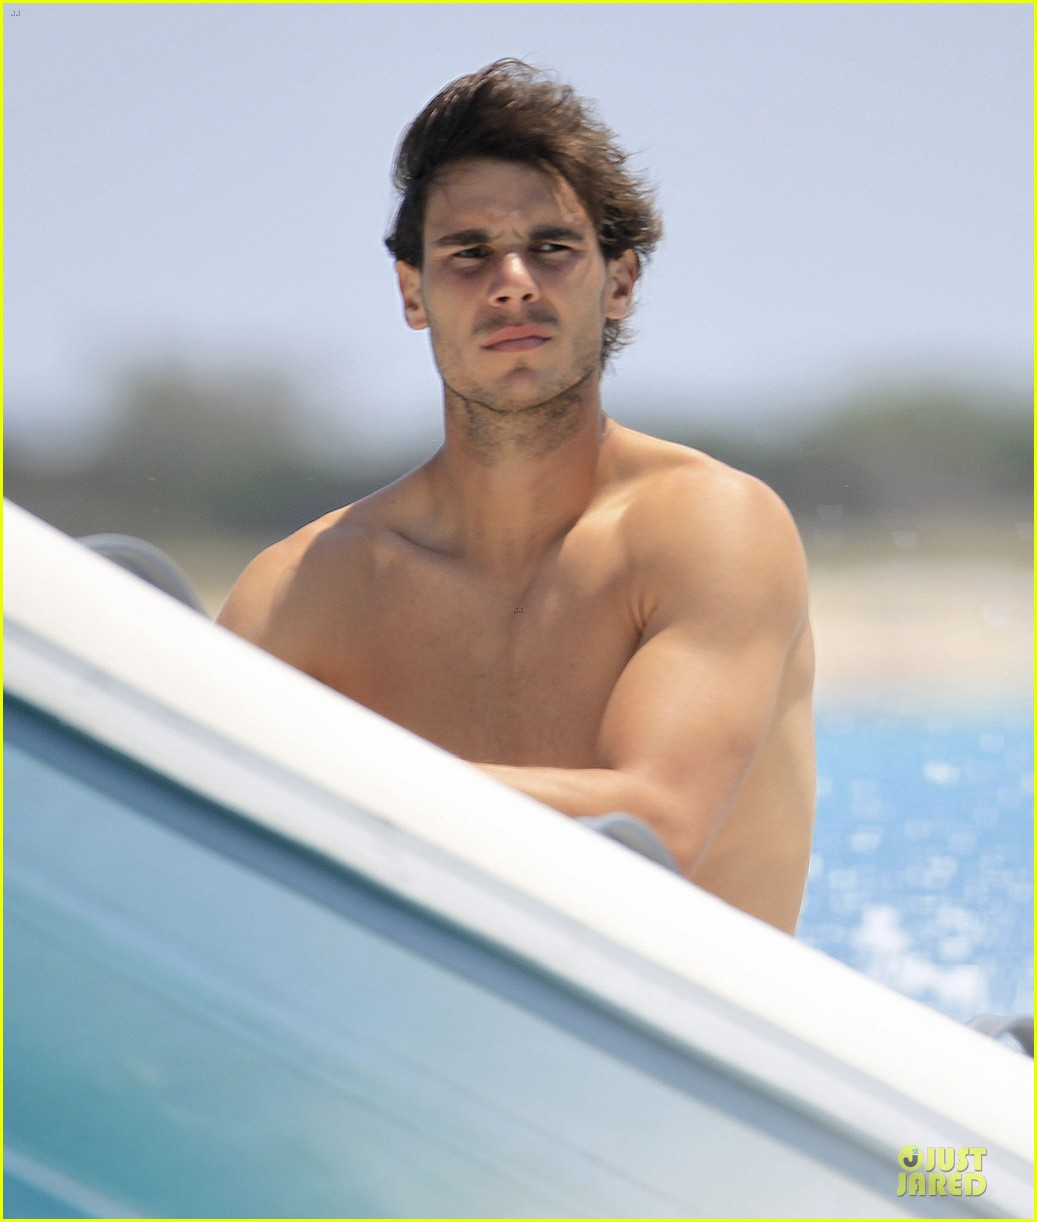 rafael nadal shirtless ibiza vacation with maria francisca perello 35